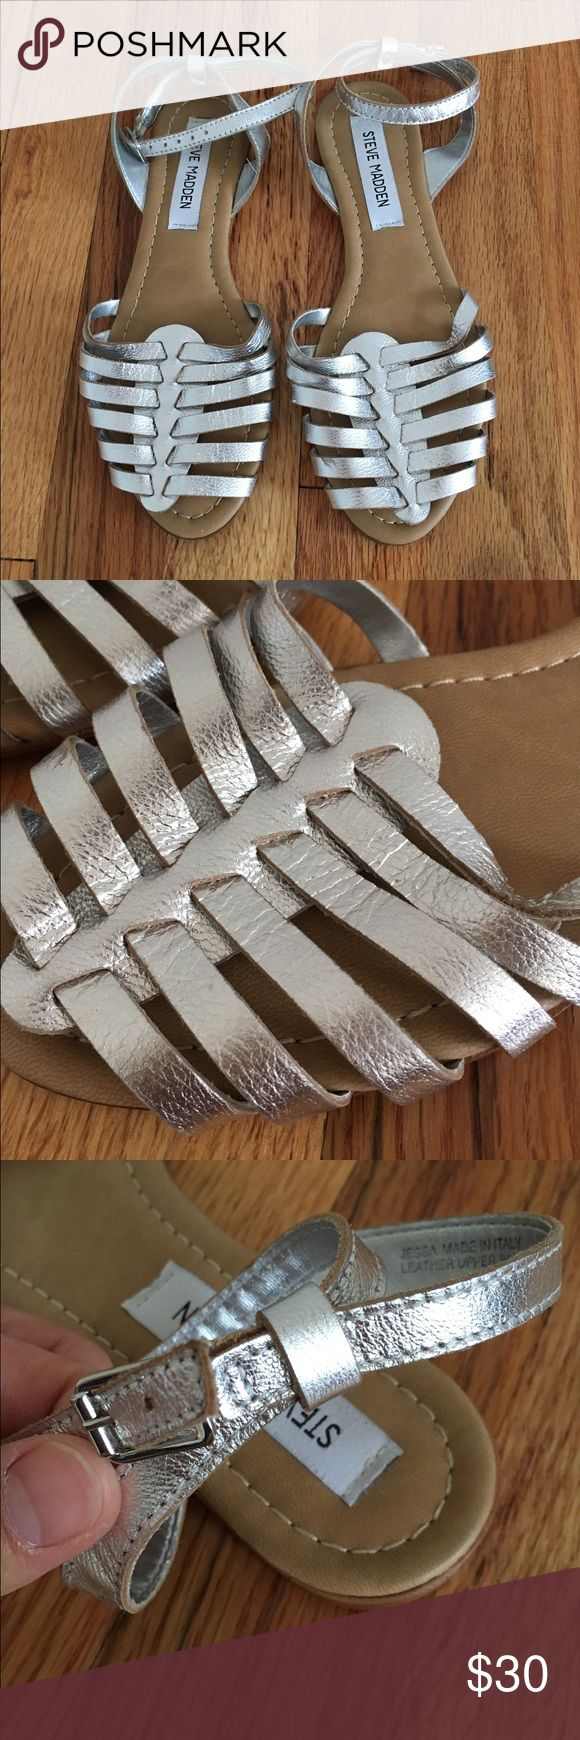 Steve Madden Silver Flat Sandal Very cute silver flat sandal with buckle detail on the side. Only worn once. Steve Madden Shoes Sandals